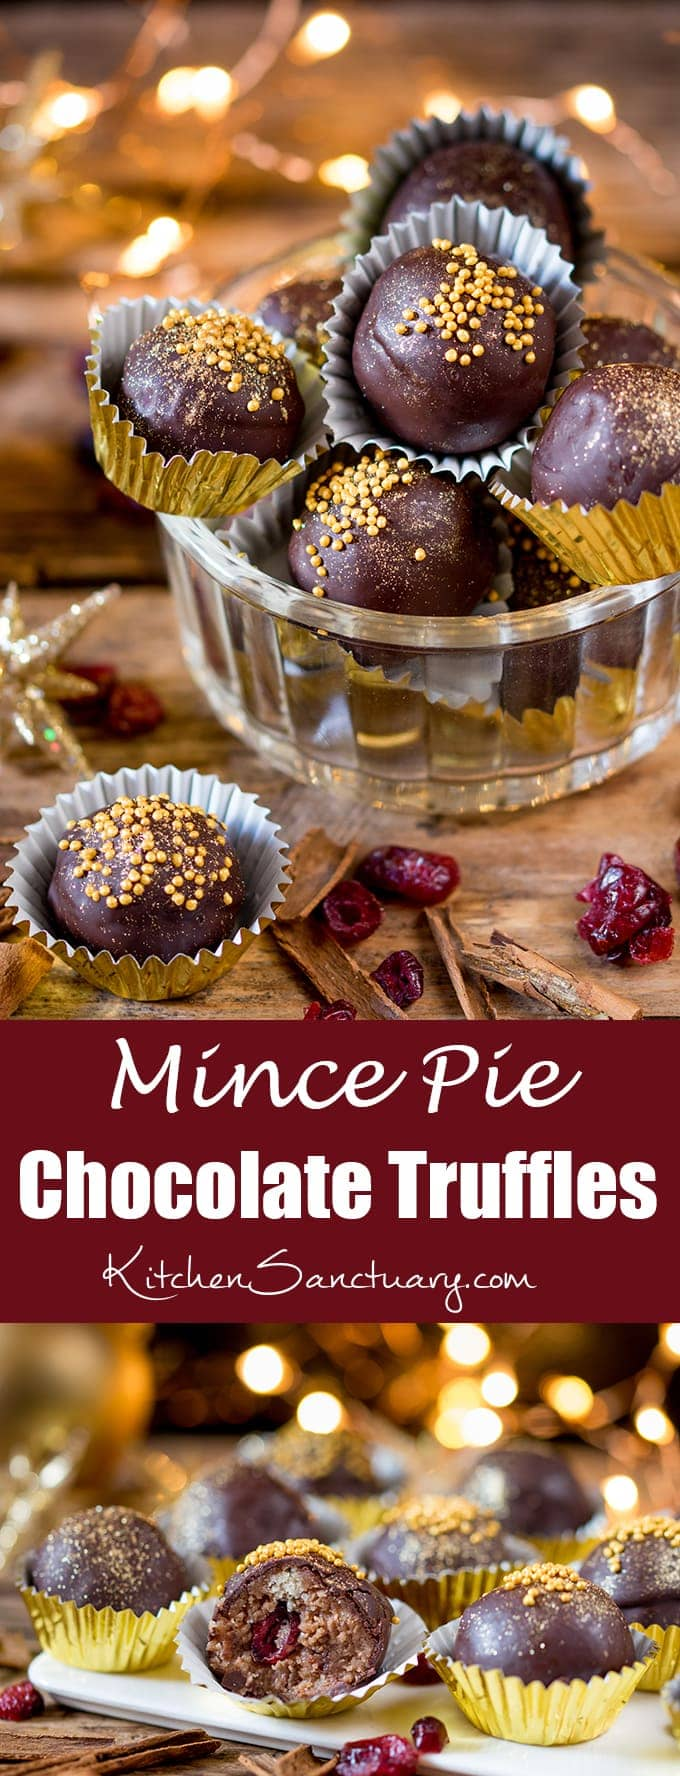 These Mince Pie Truffles are packed with fruity mincemeat and cranberries - a delicious party snack or homemade Christmas gift!